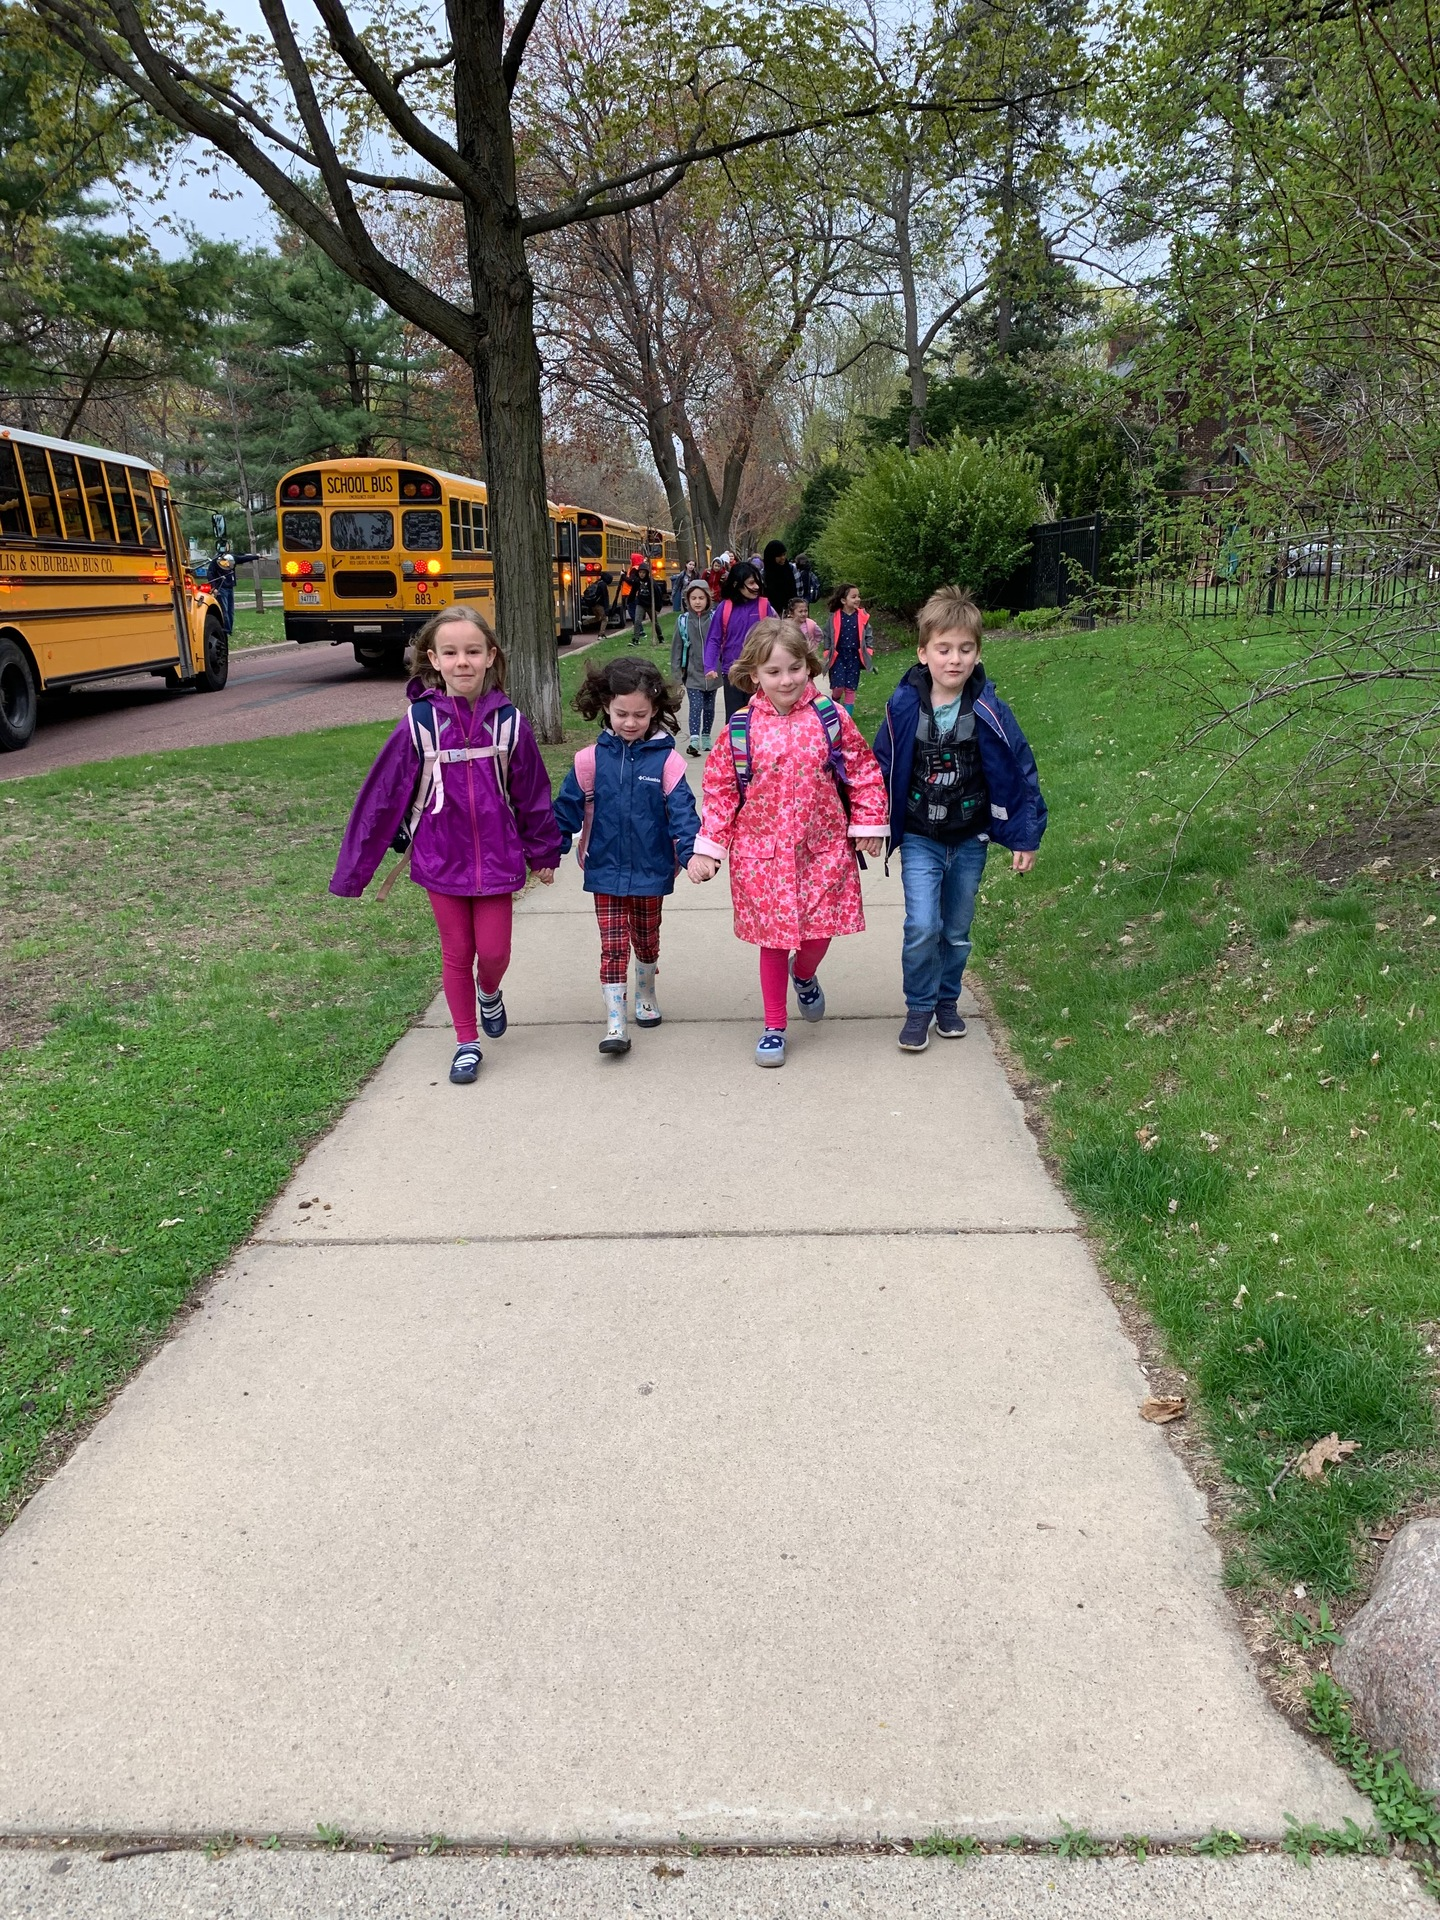 Four students walk hand-in-hand down the sidewalk. More students and school busses are in the background.